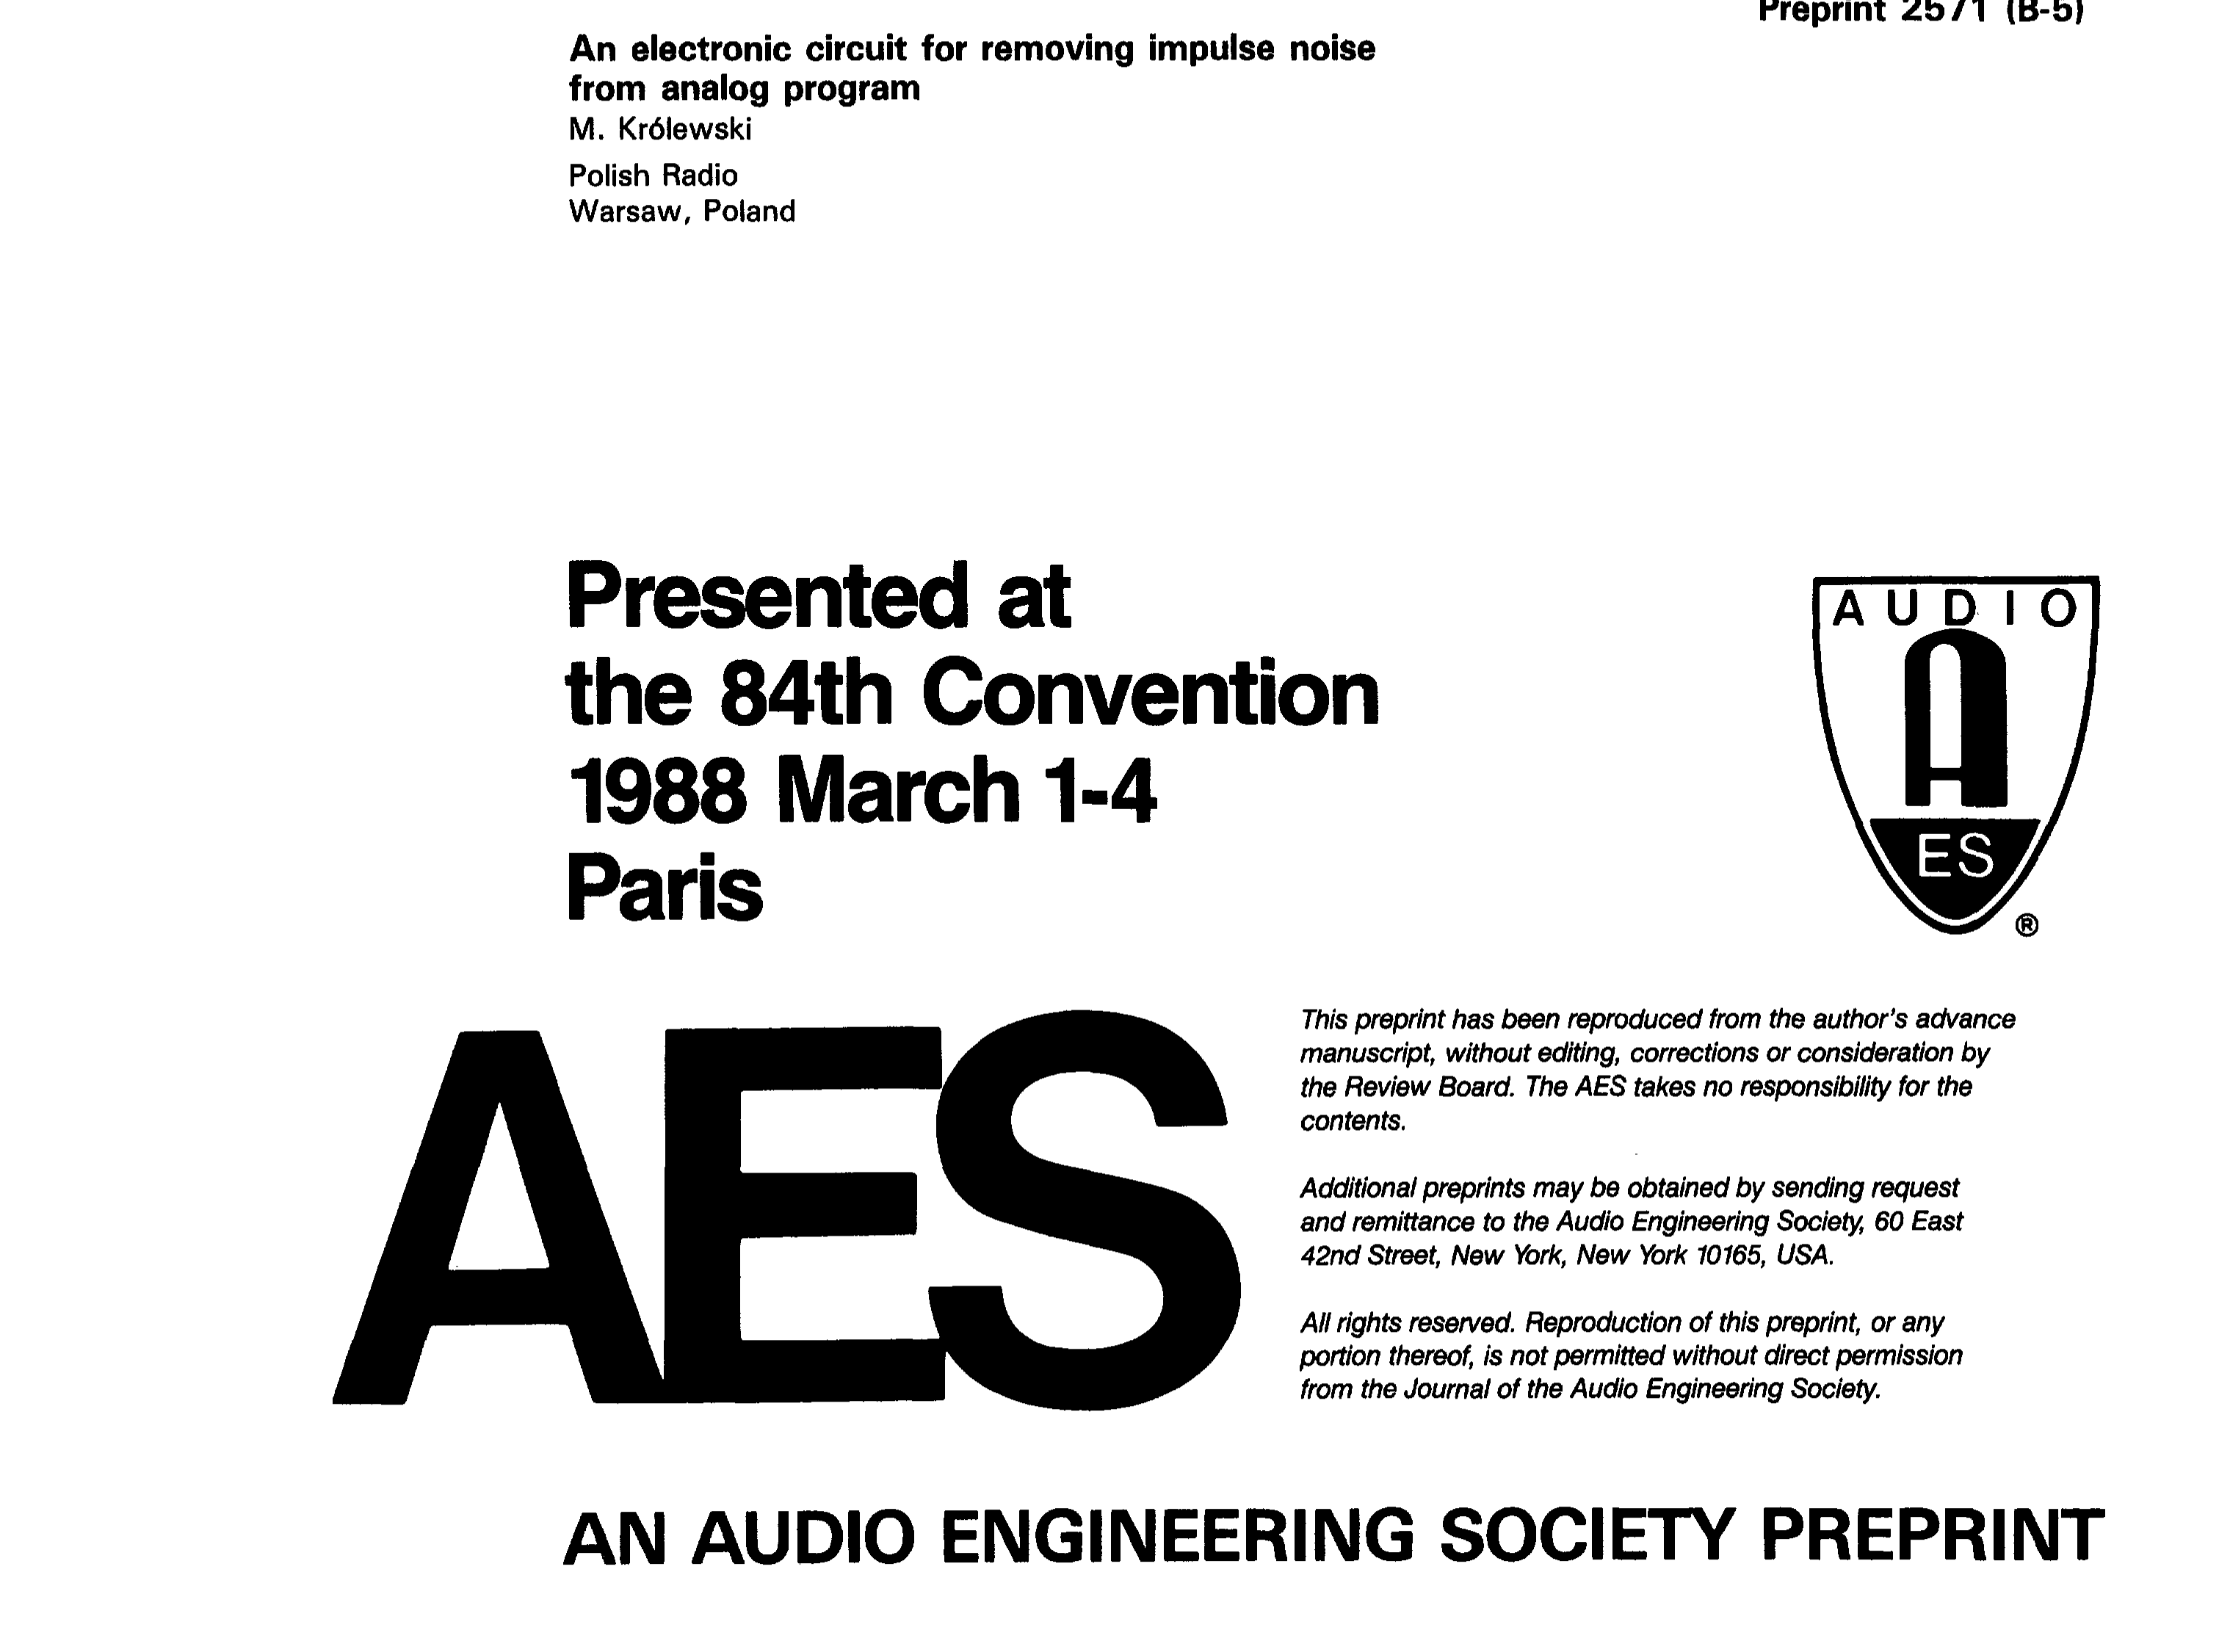 Aes E Library An Electronic Circuit For Removing Impulse Noise Journal From Analog Program